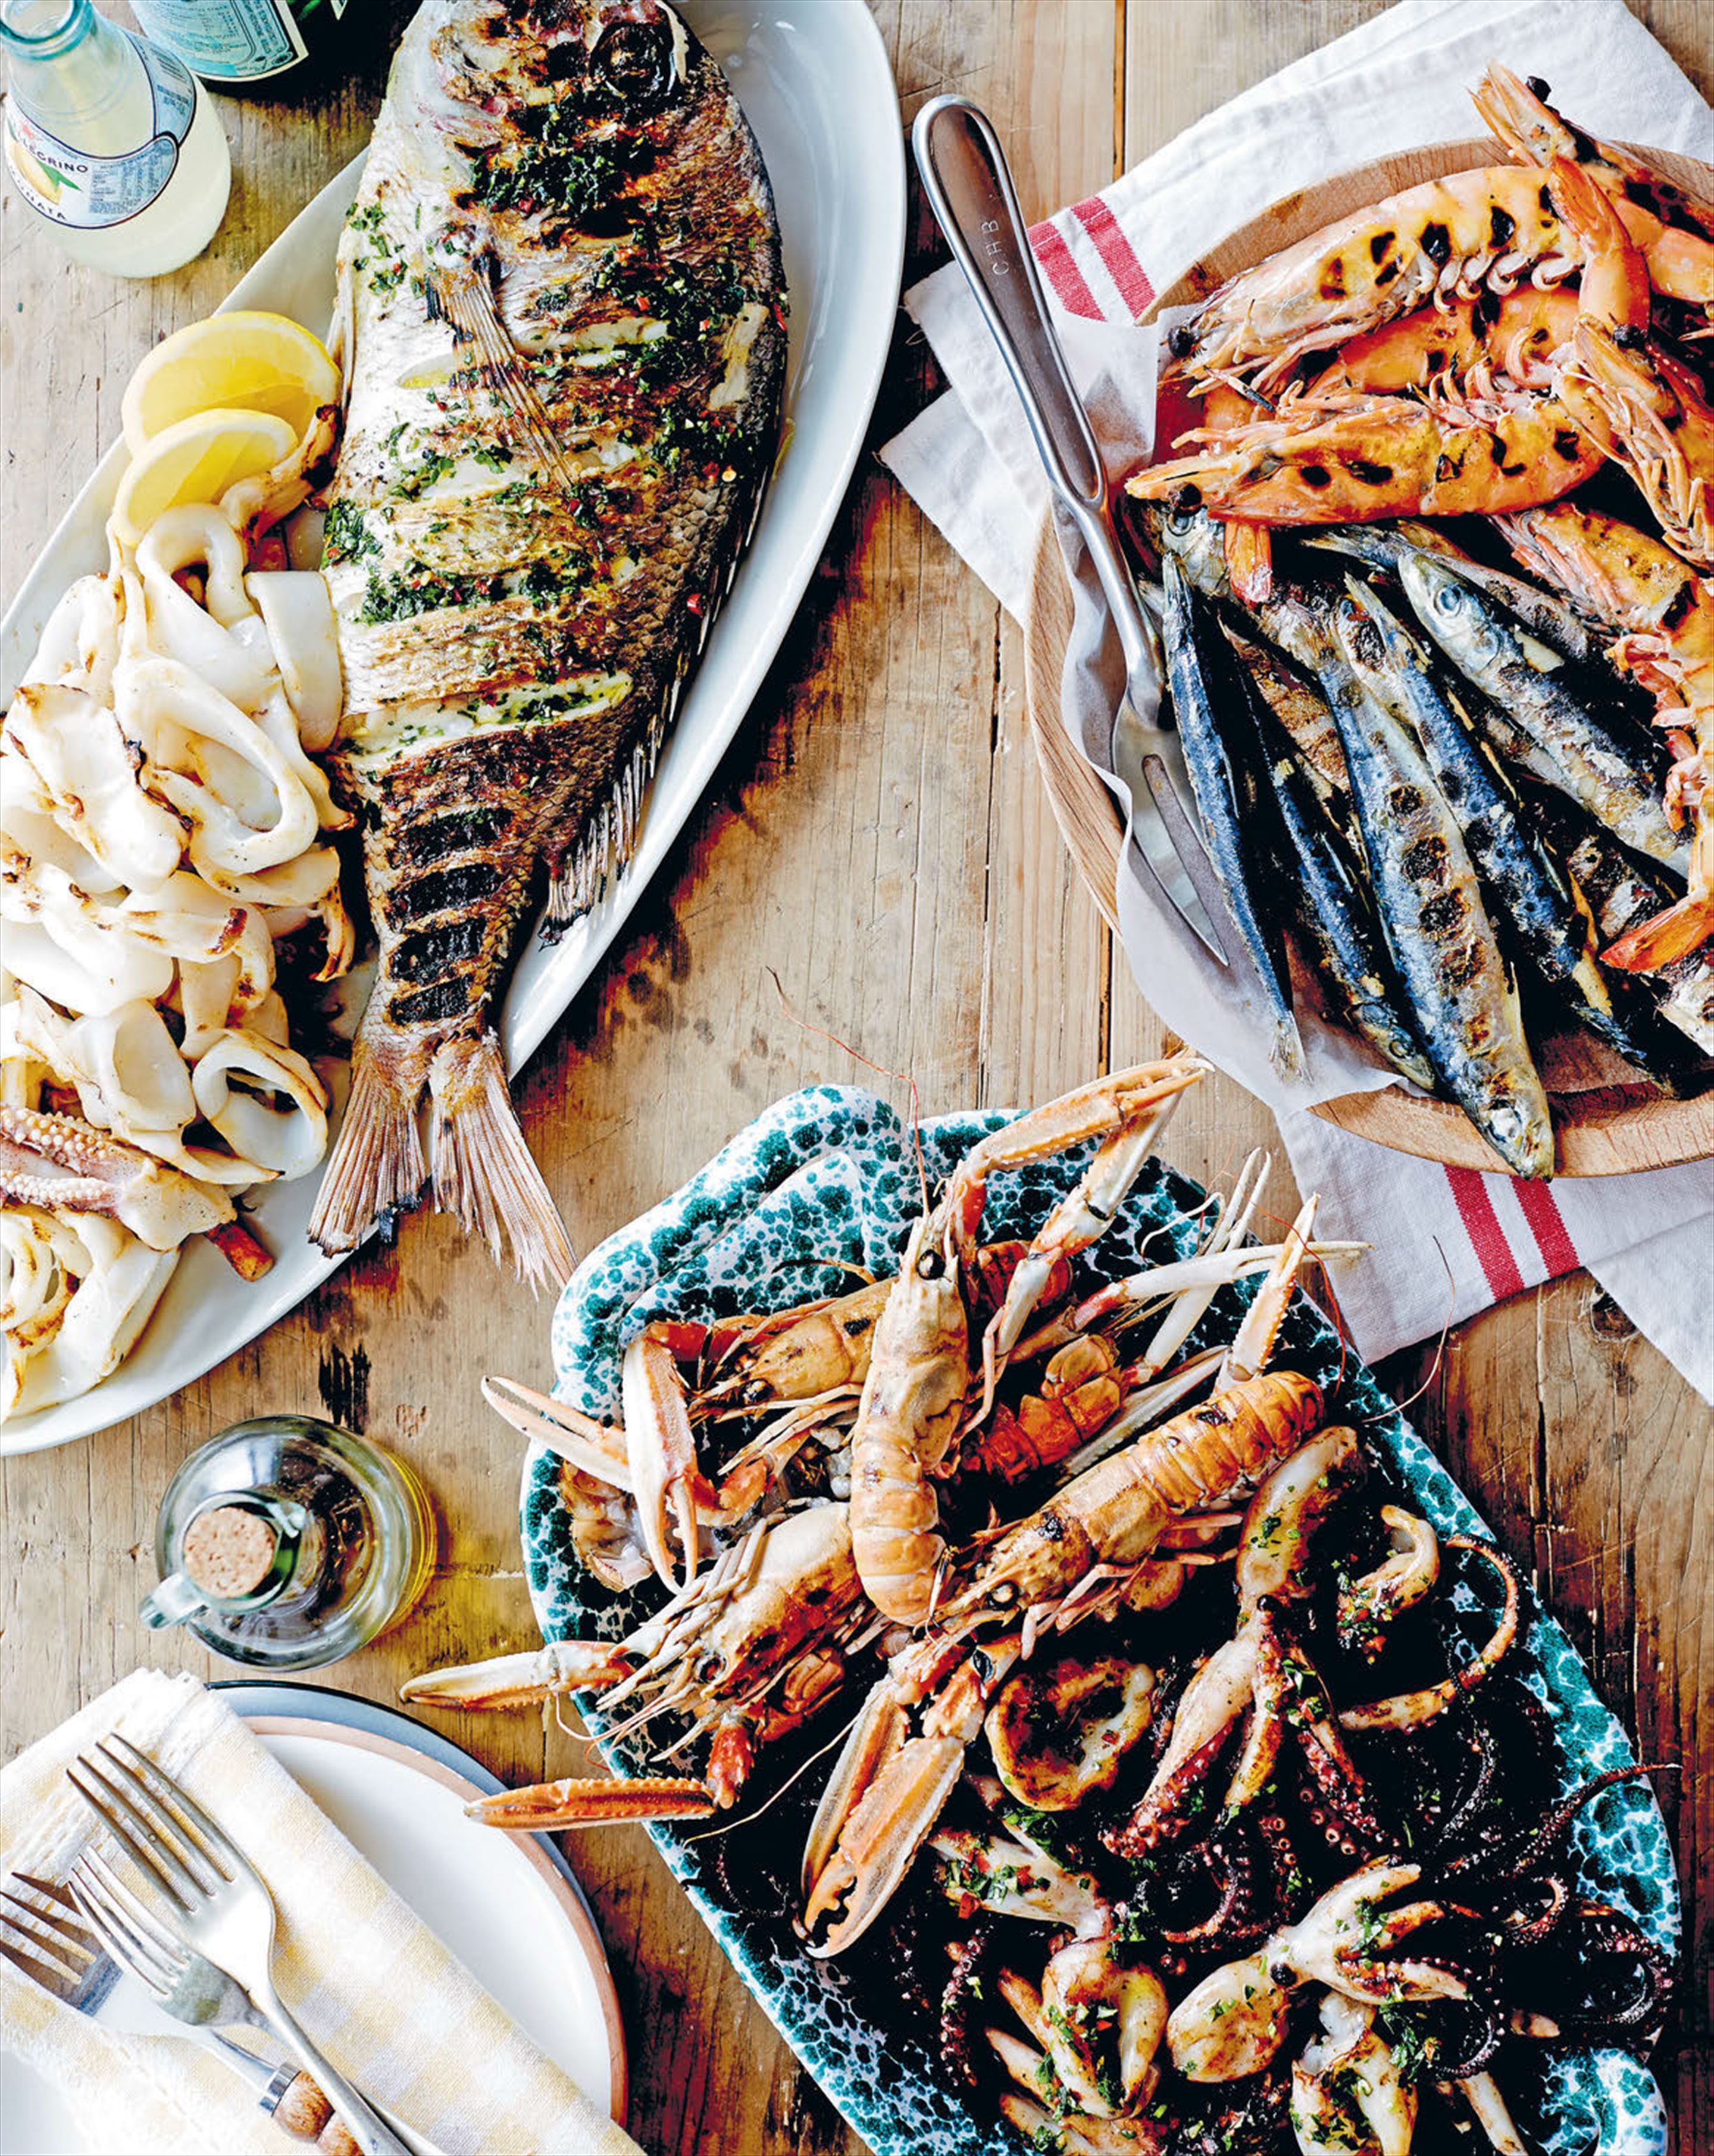 Fire-grilled fish and seafood